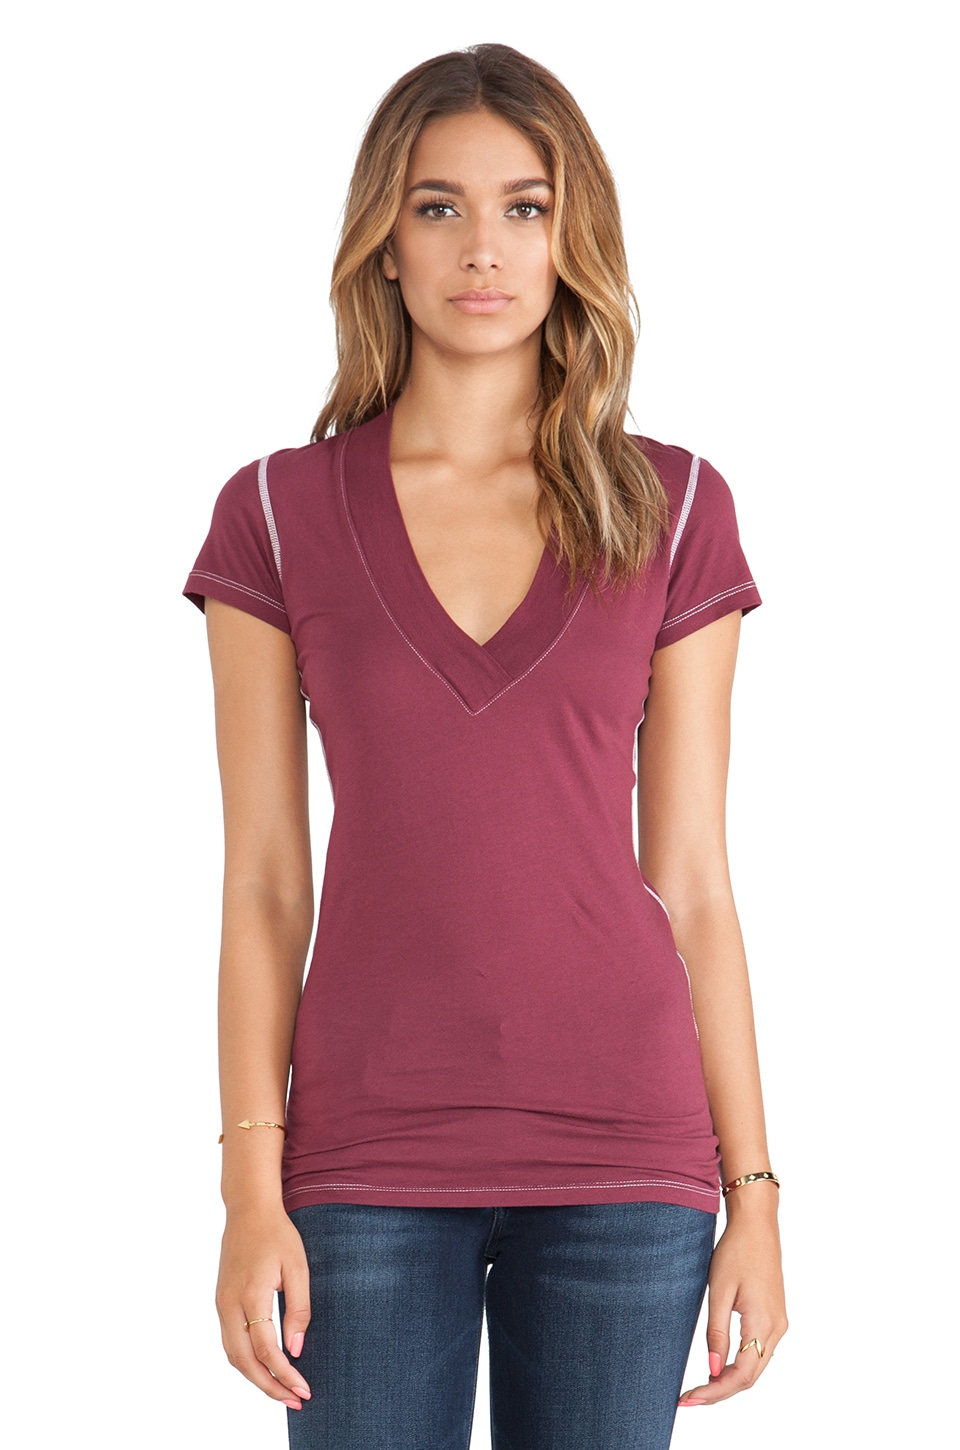 Daftbird Deep V Tee in Port Wine